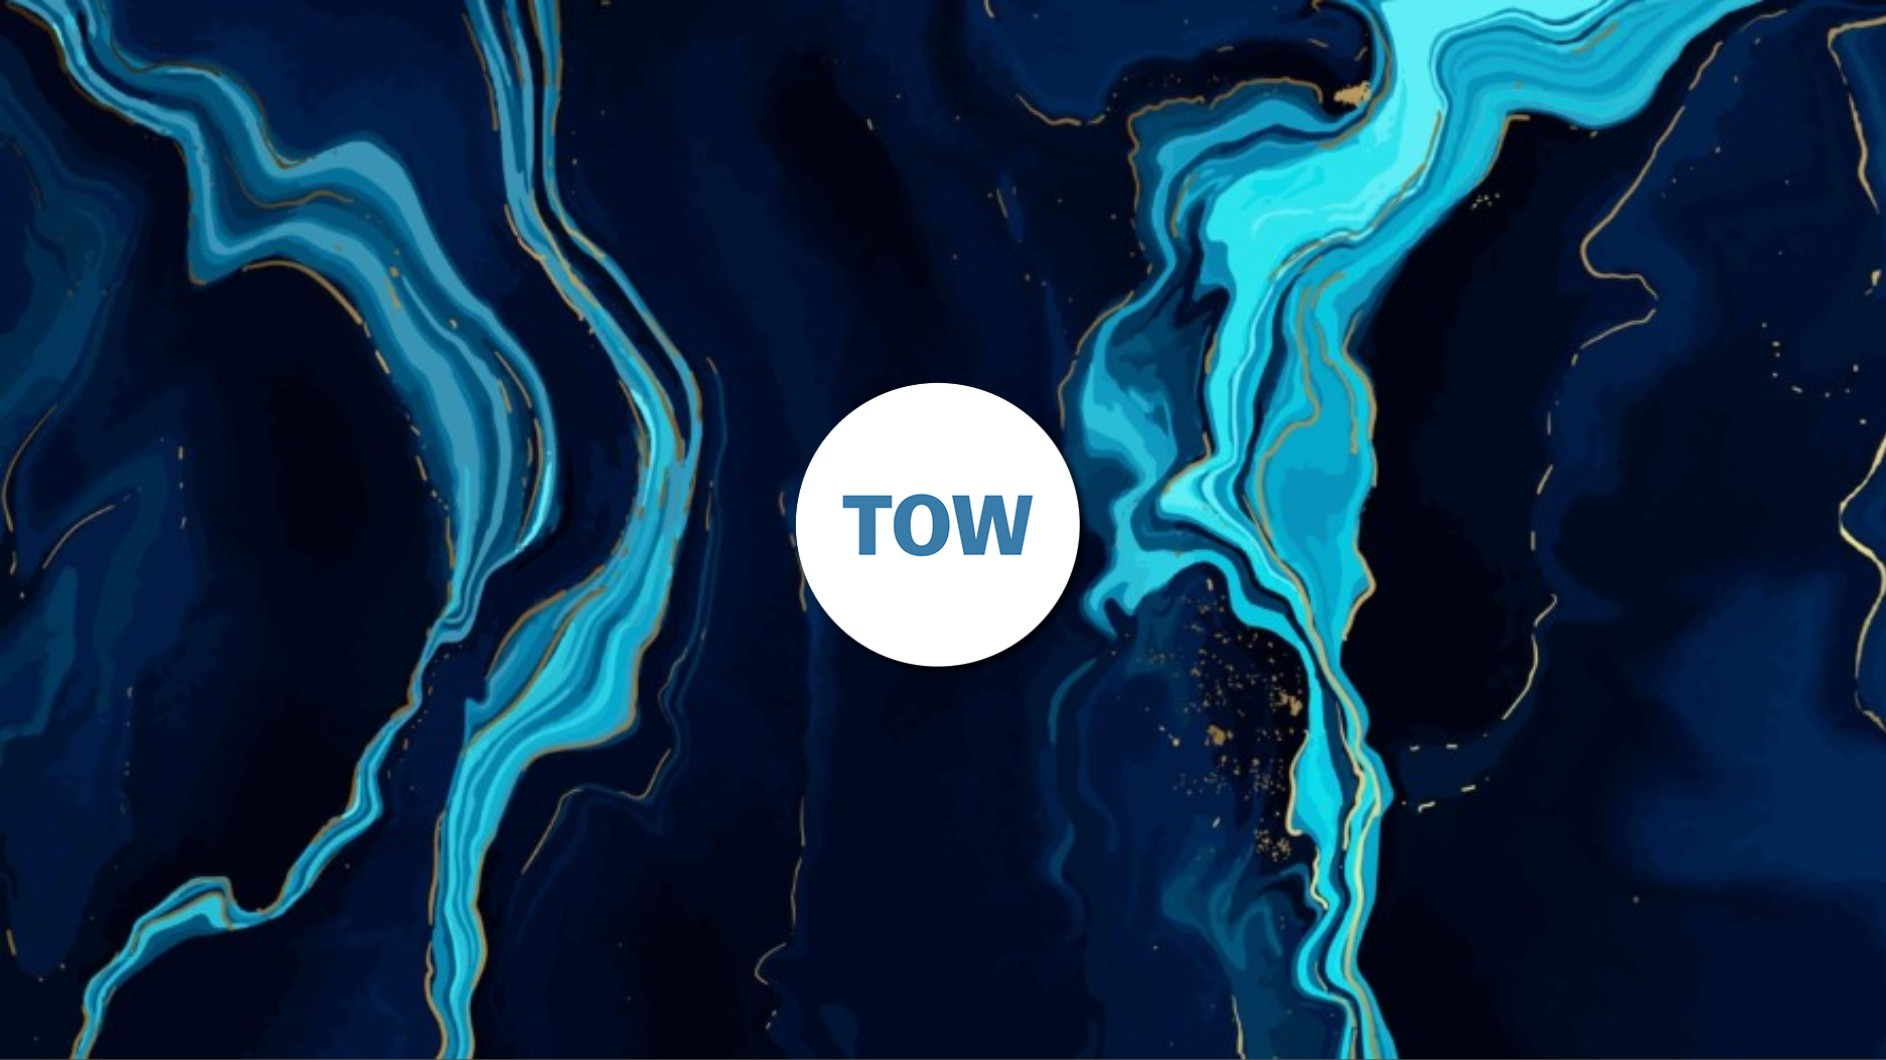 Illustration of a marble effect in blue on a black background-- the word Tow is in the background